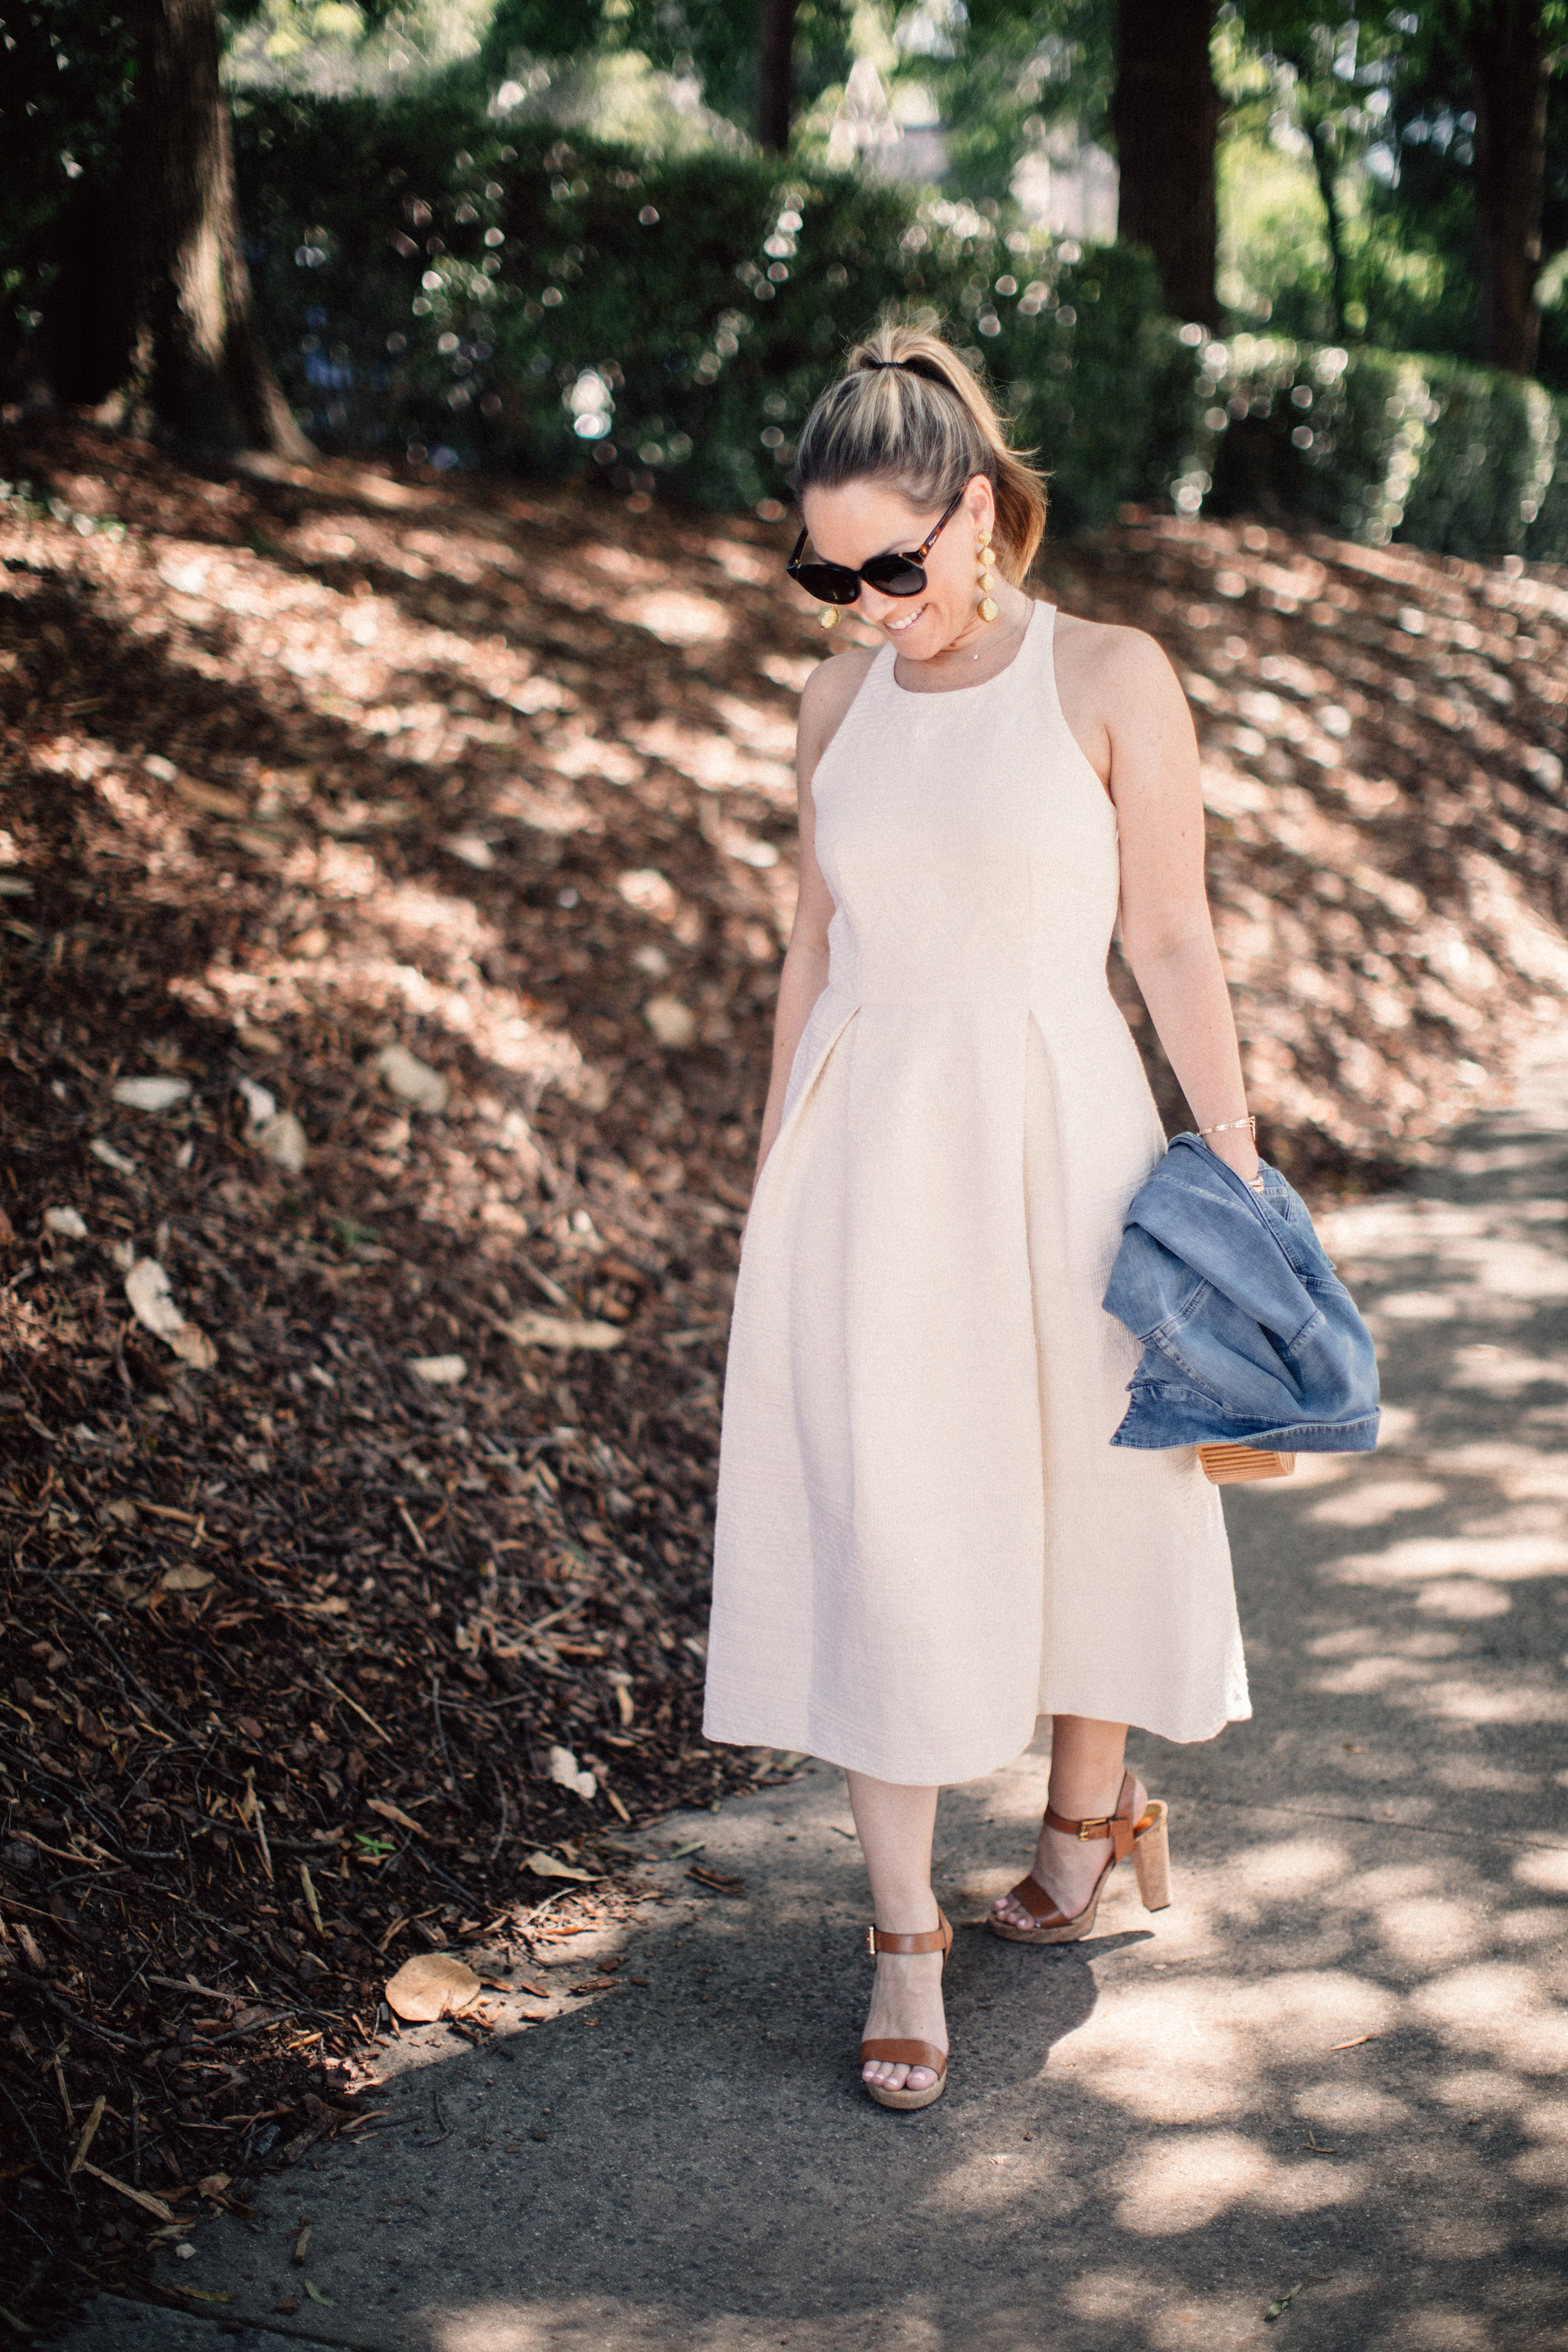 Paper Crown Gobi dress on ECW today! Blue Denim Jacket: The Perfect Transition Piece by North Carolina blogger Every Chic Way